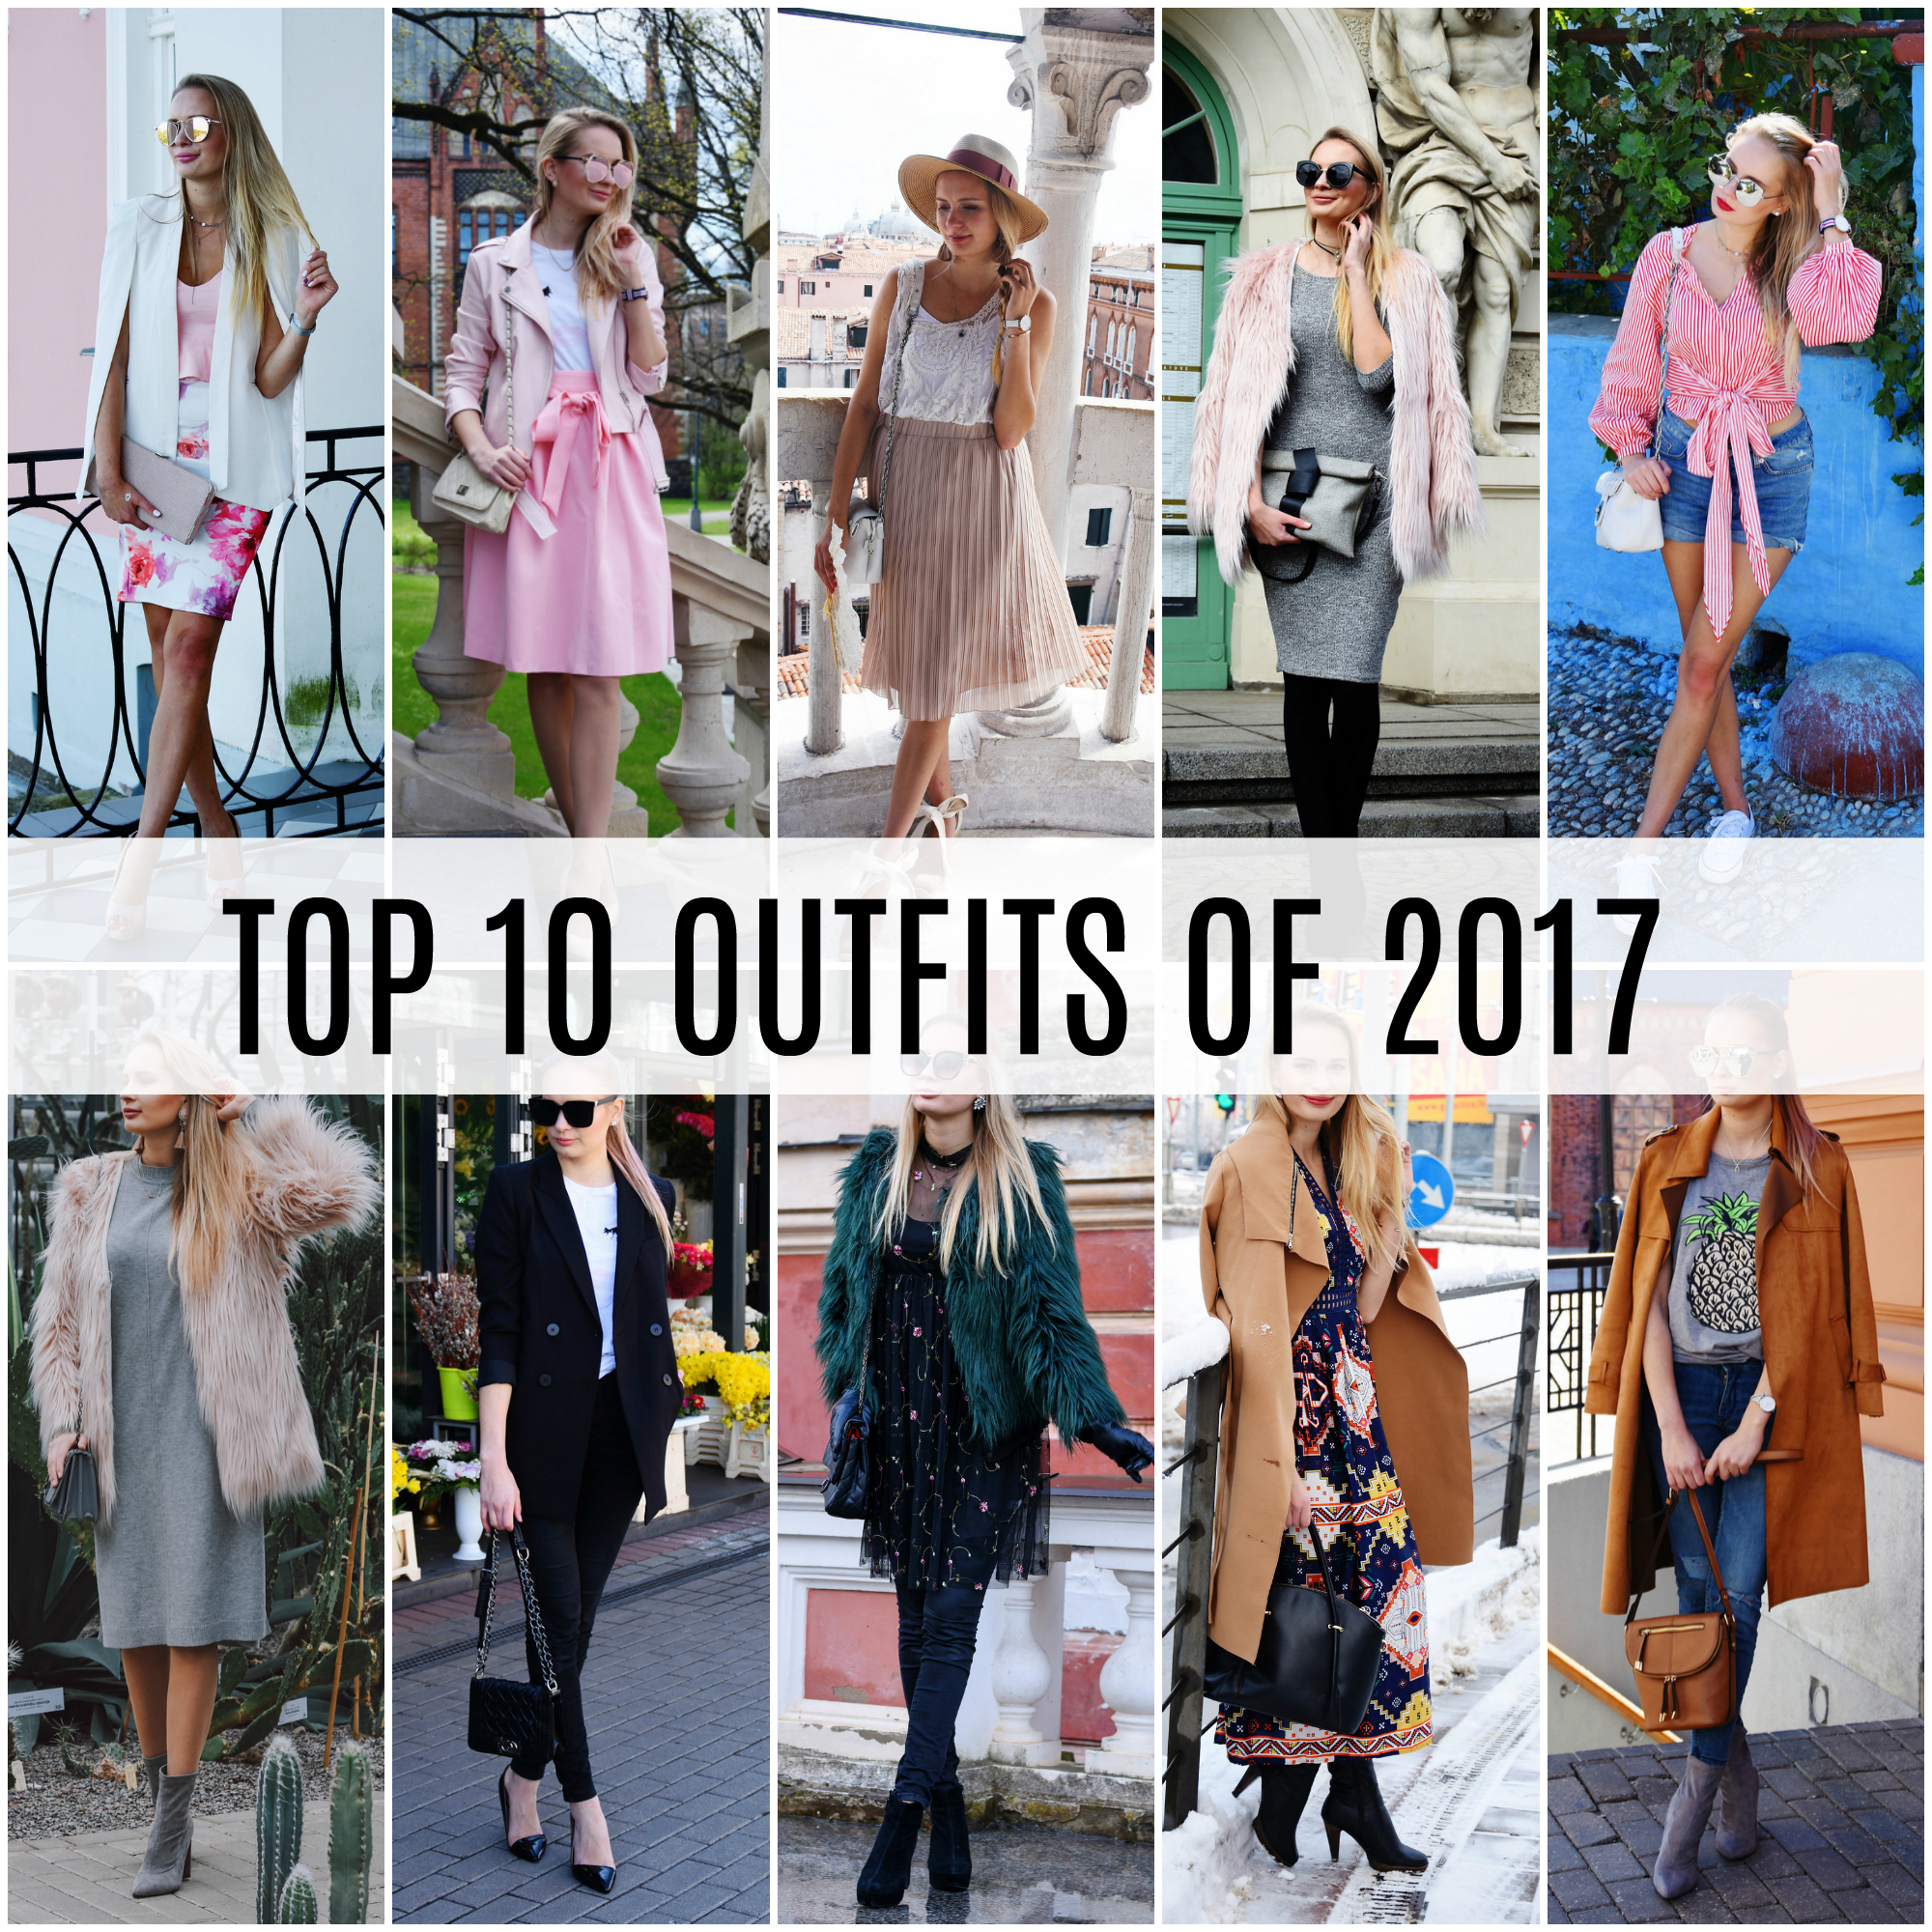 Top 10 outfits of 2017